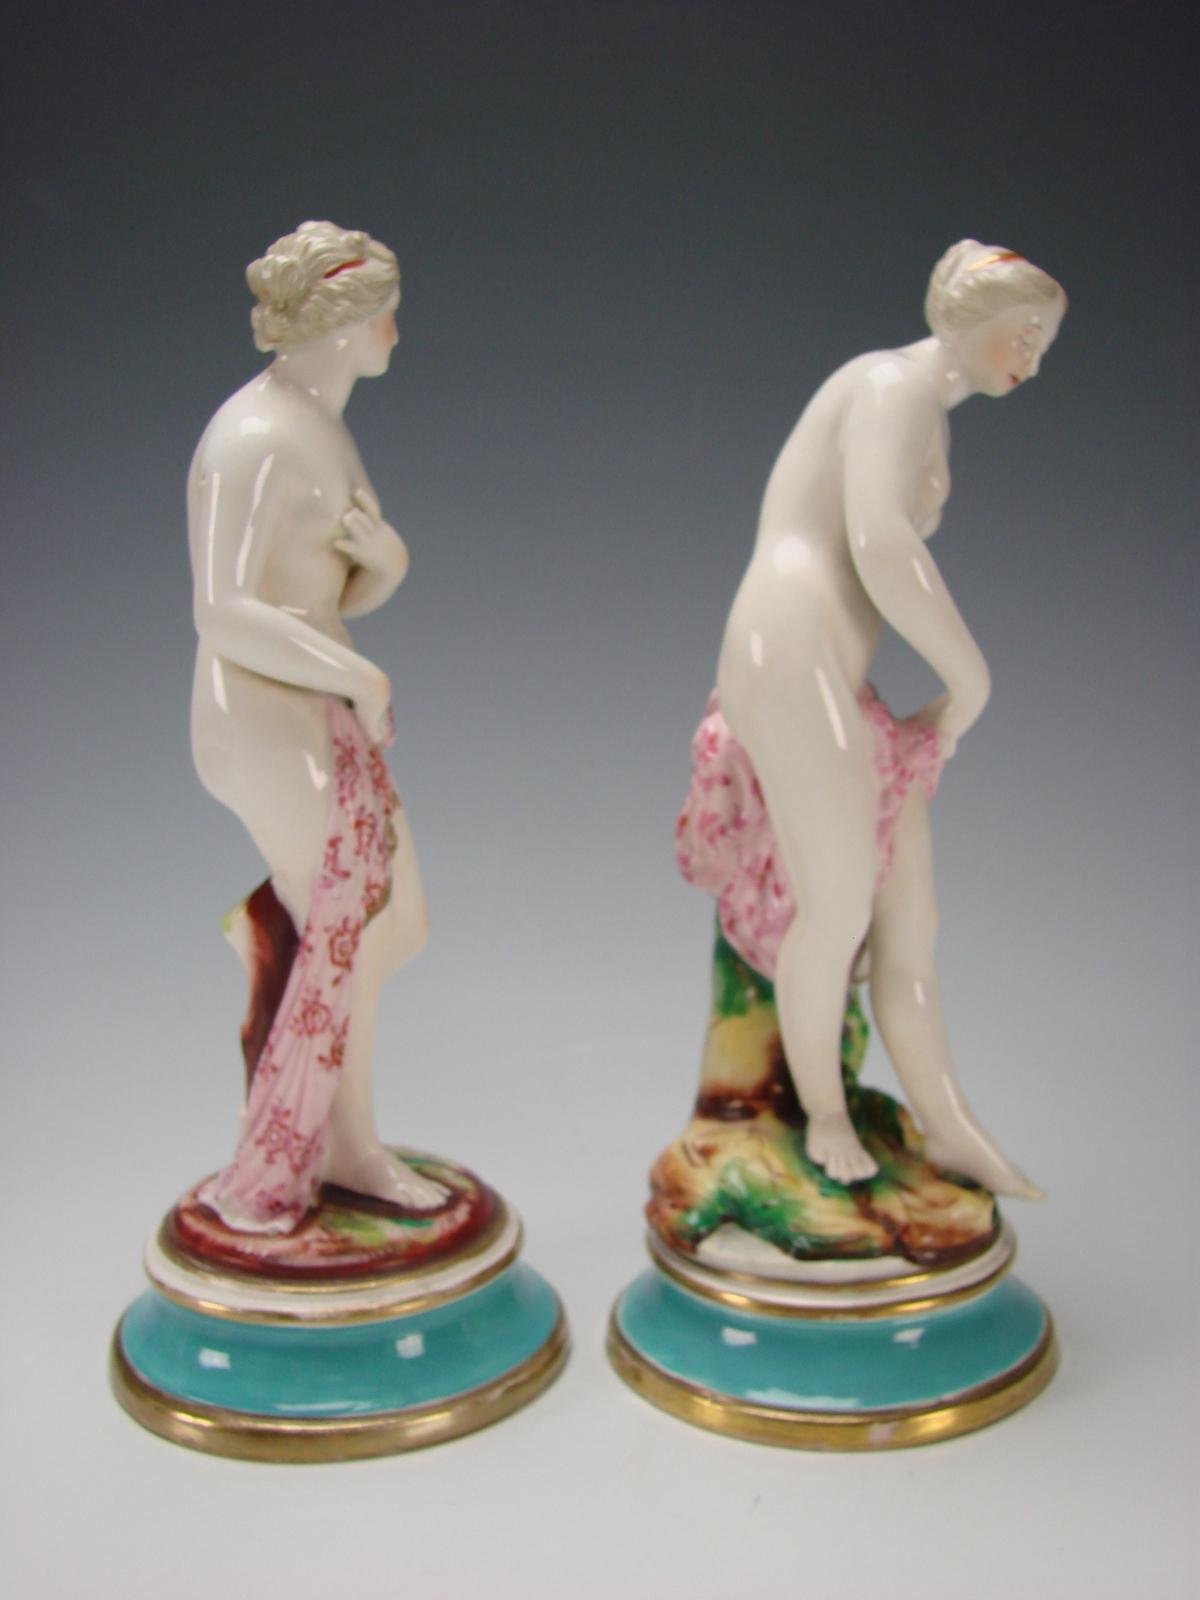 Antique English Porcelain Nude Lady Figurines Statues C1850 From Hideandgokeep On Ruby -1418